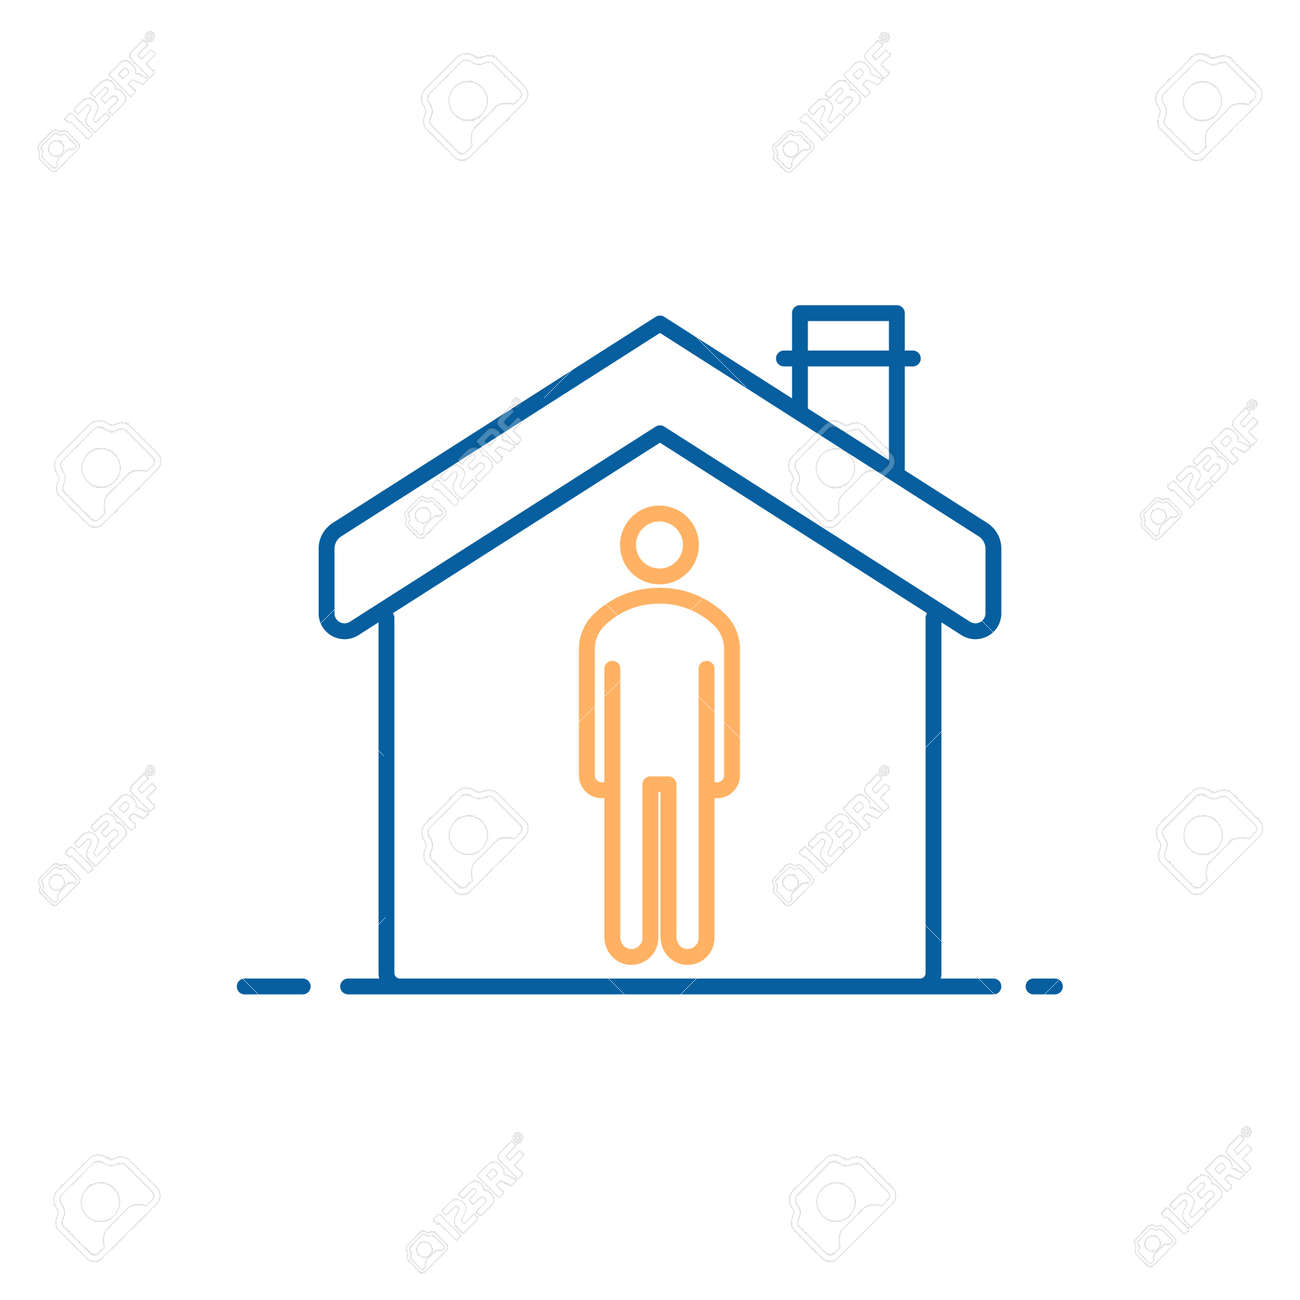 social distancing icon. Vector thin line illustration for concepts of distance keep in public for protection in pandemics like covid-19 coronavirus outbreak. Not allowing outbreak virus spreading. Person at home social isolating - 158456316